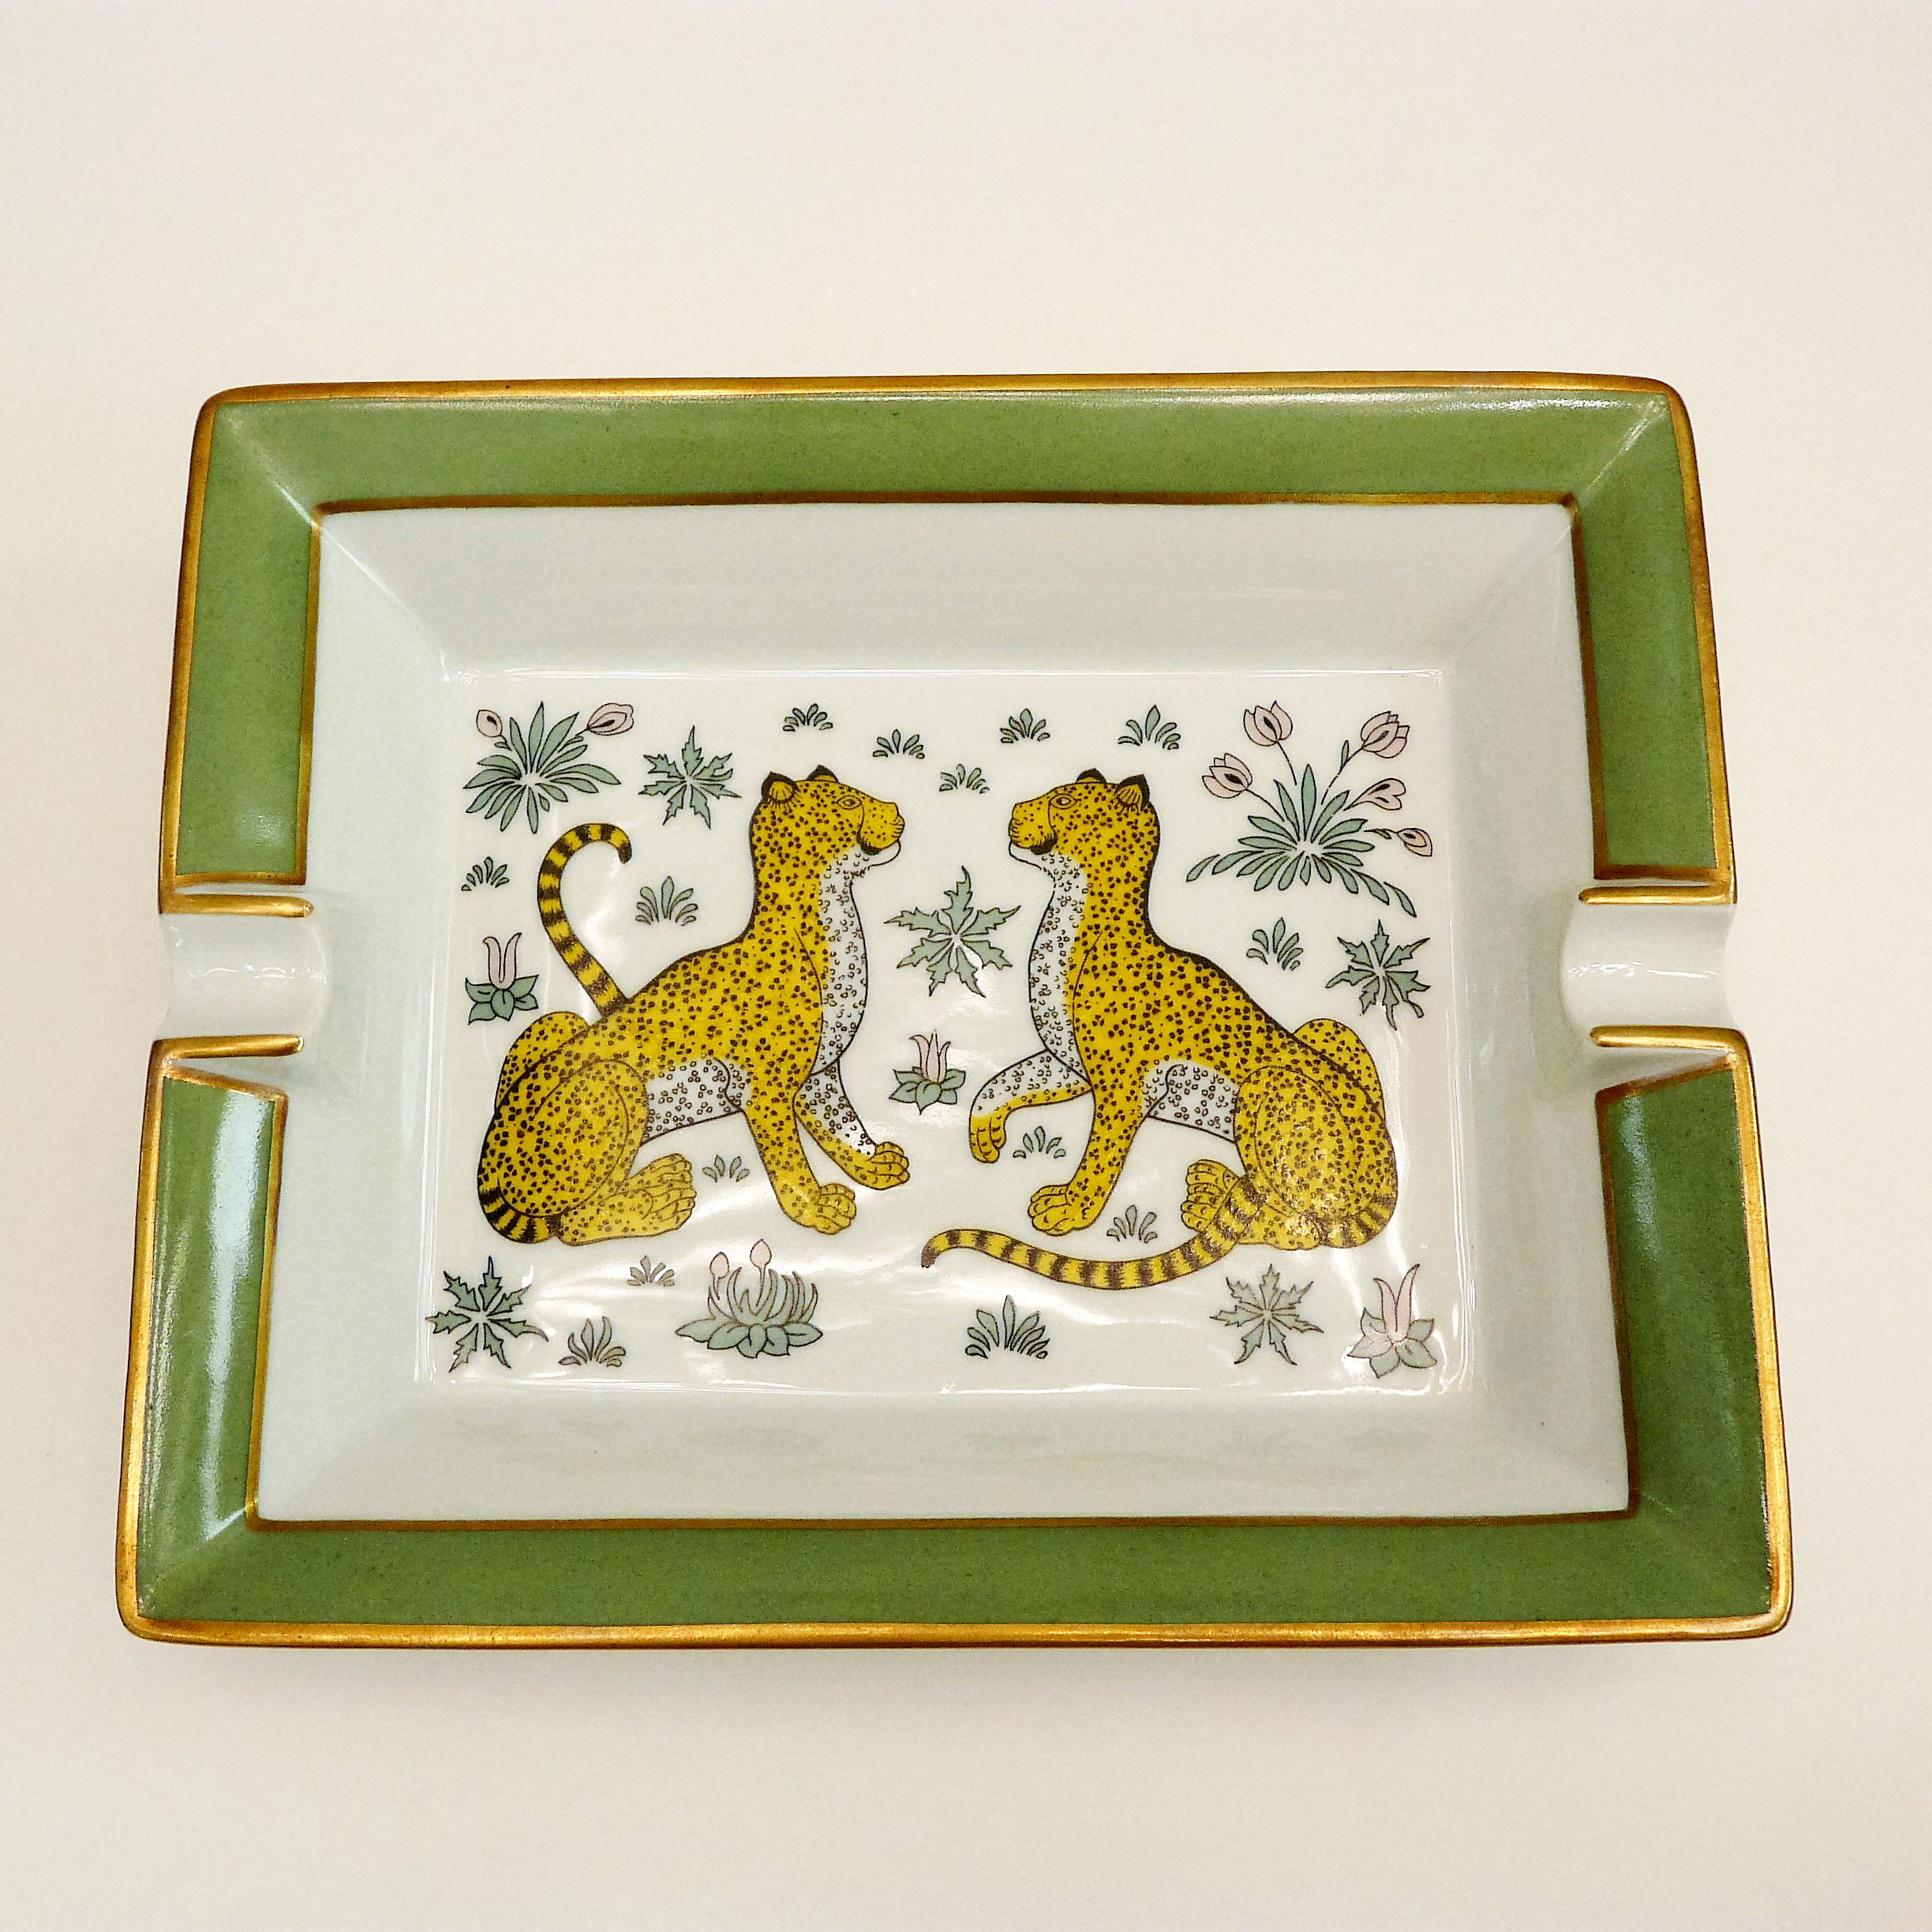 Authentic Hermes Limoges Porcelain Cigar Ashtray Cheetah Guépards Leopards Made In France